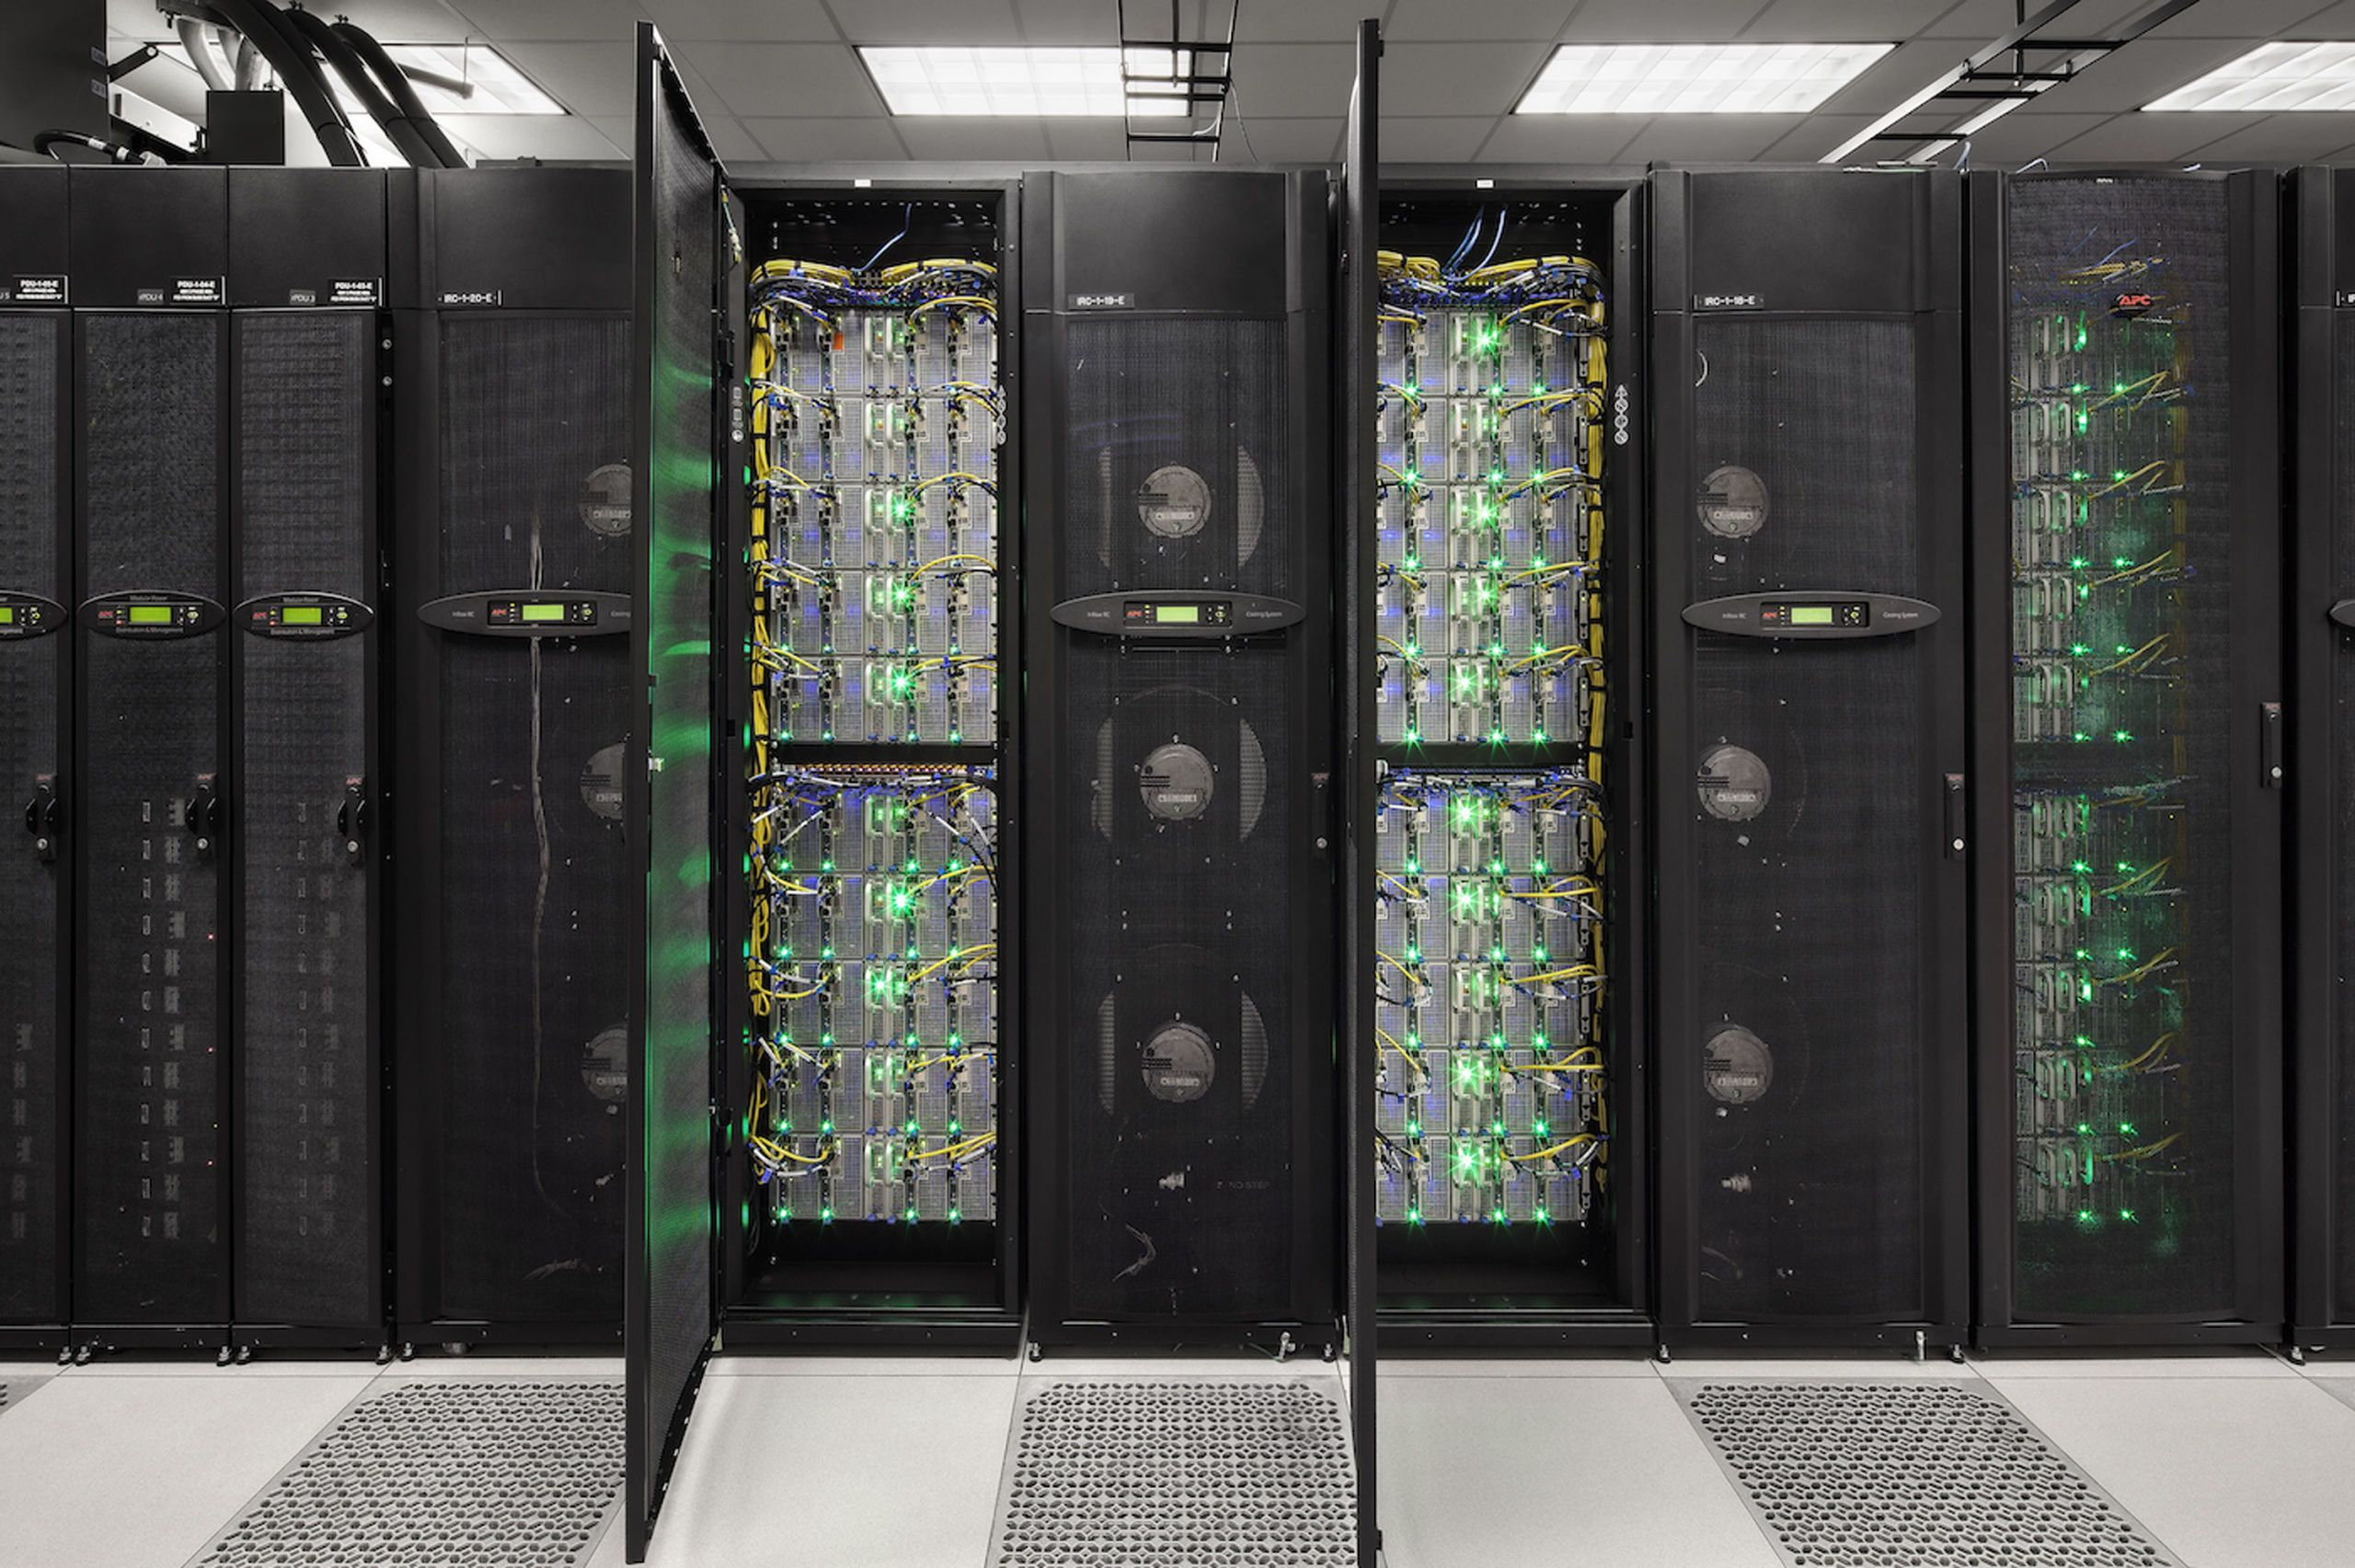 World's Largest Math Proof Takes Up 200 Terabytes